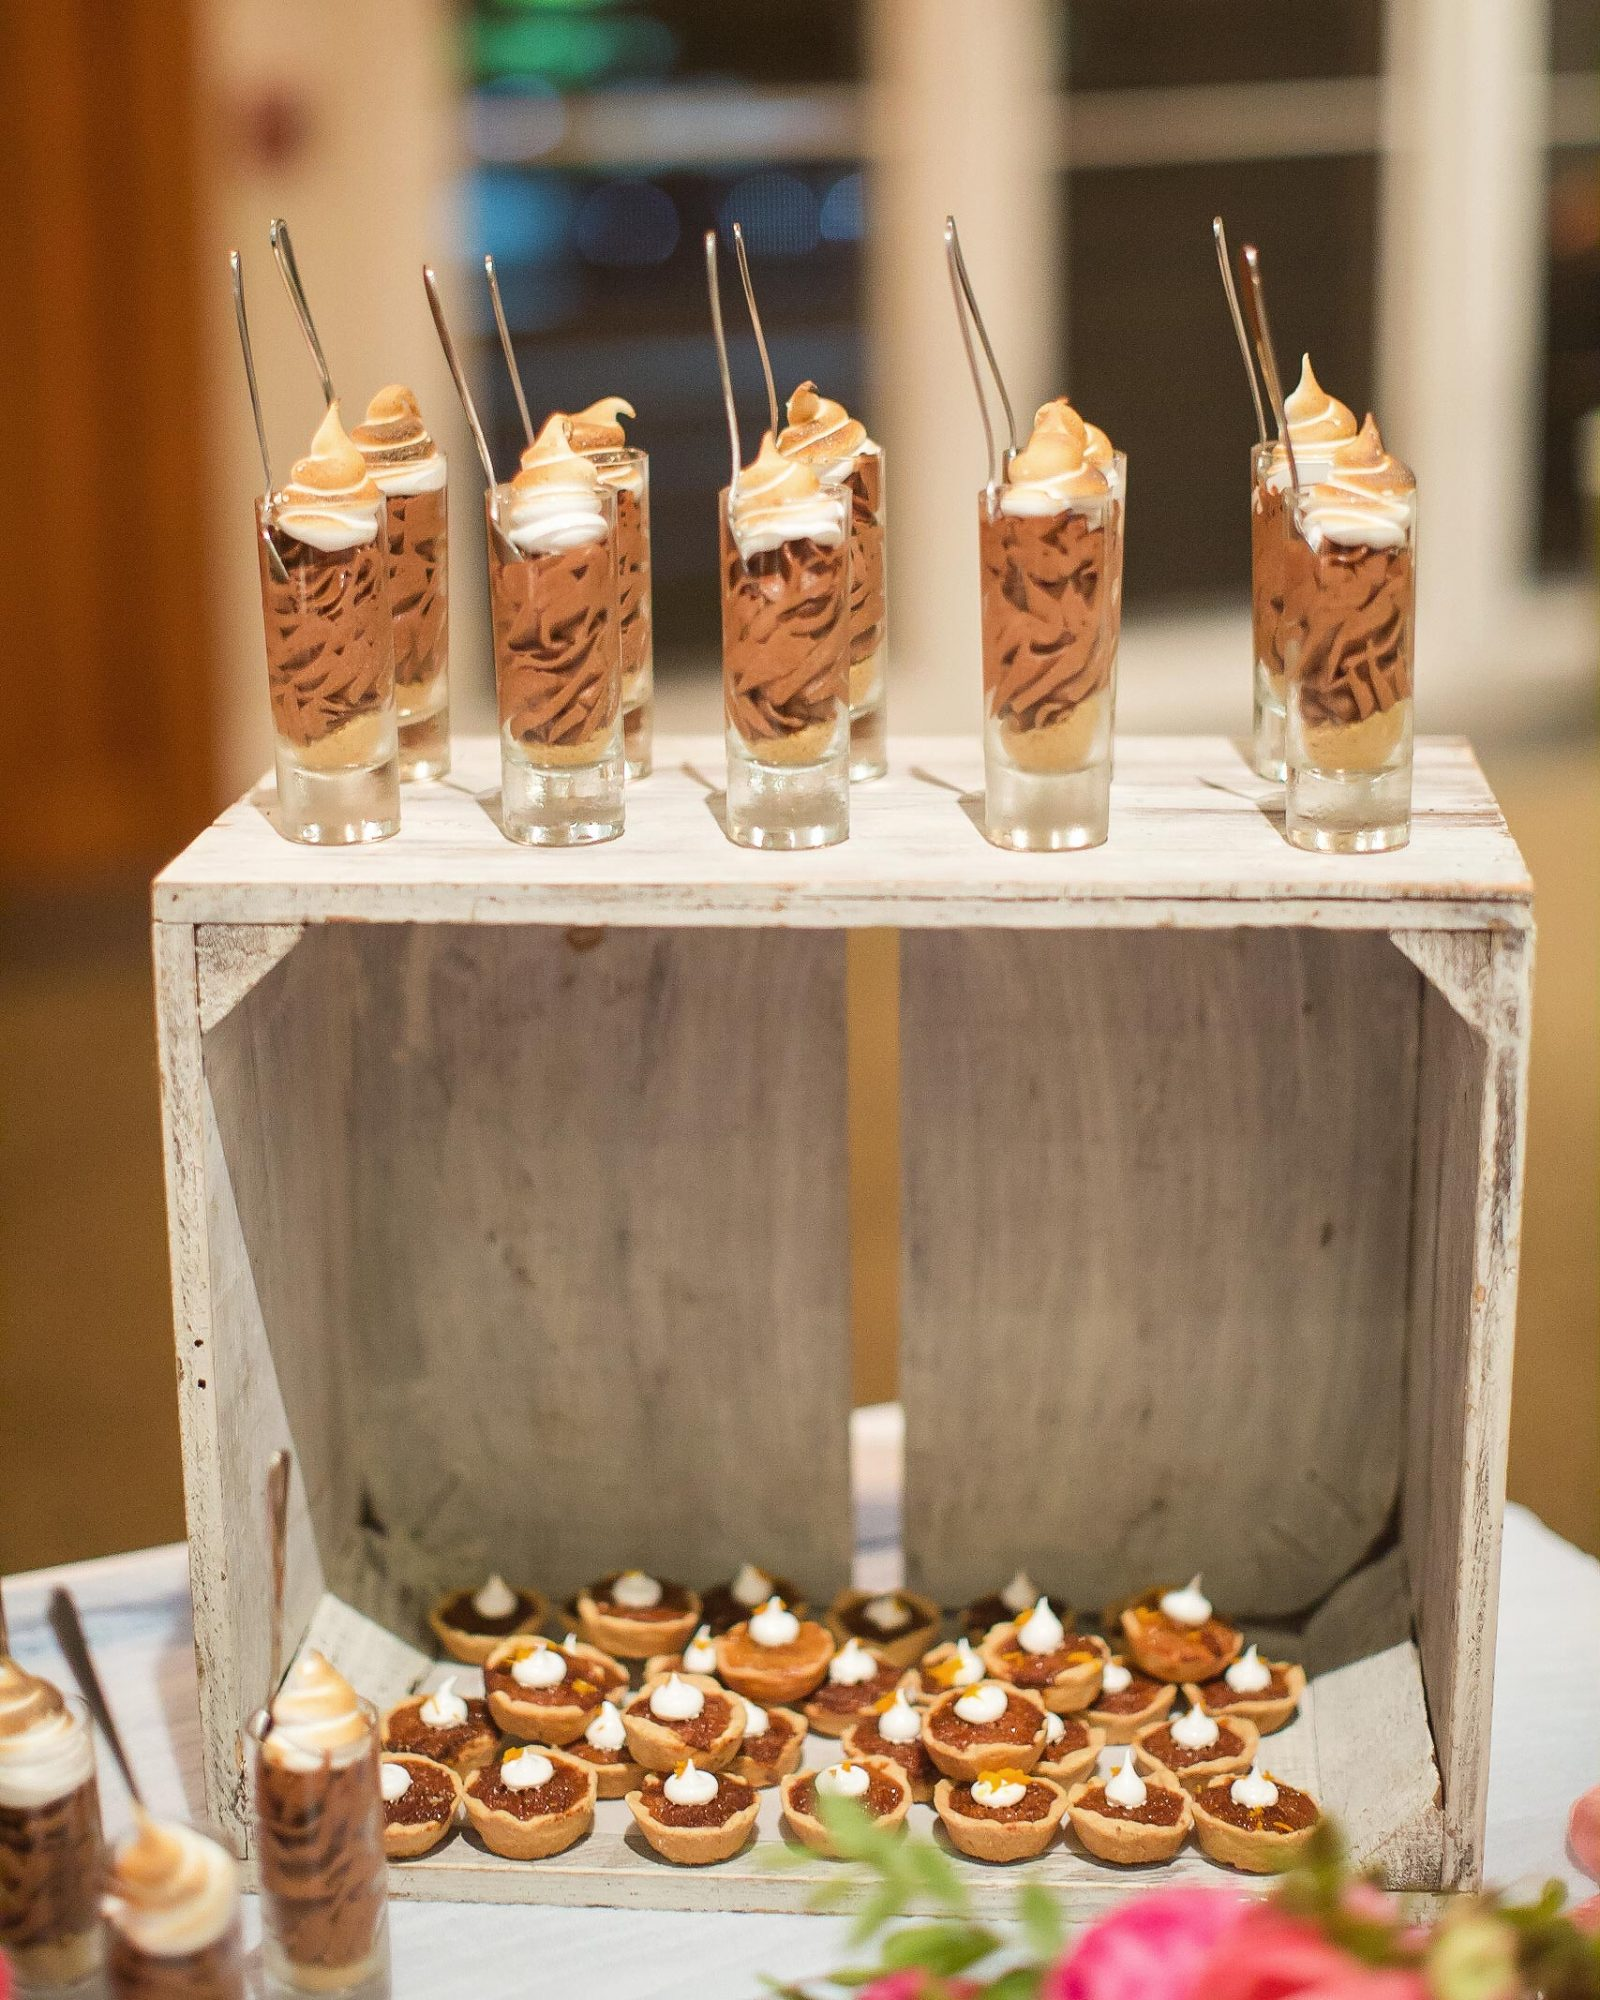 christen-tim-wedding-desserts-22437-6143924-0816.jpg